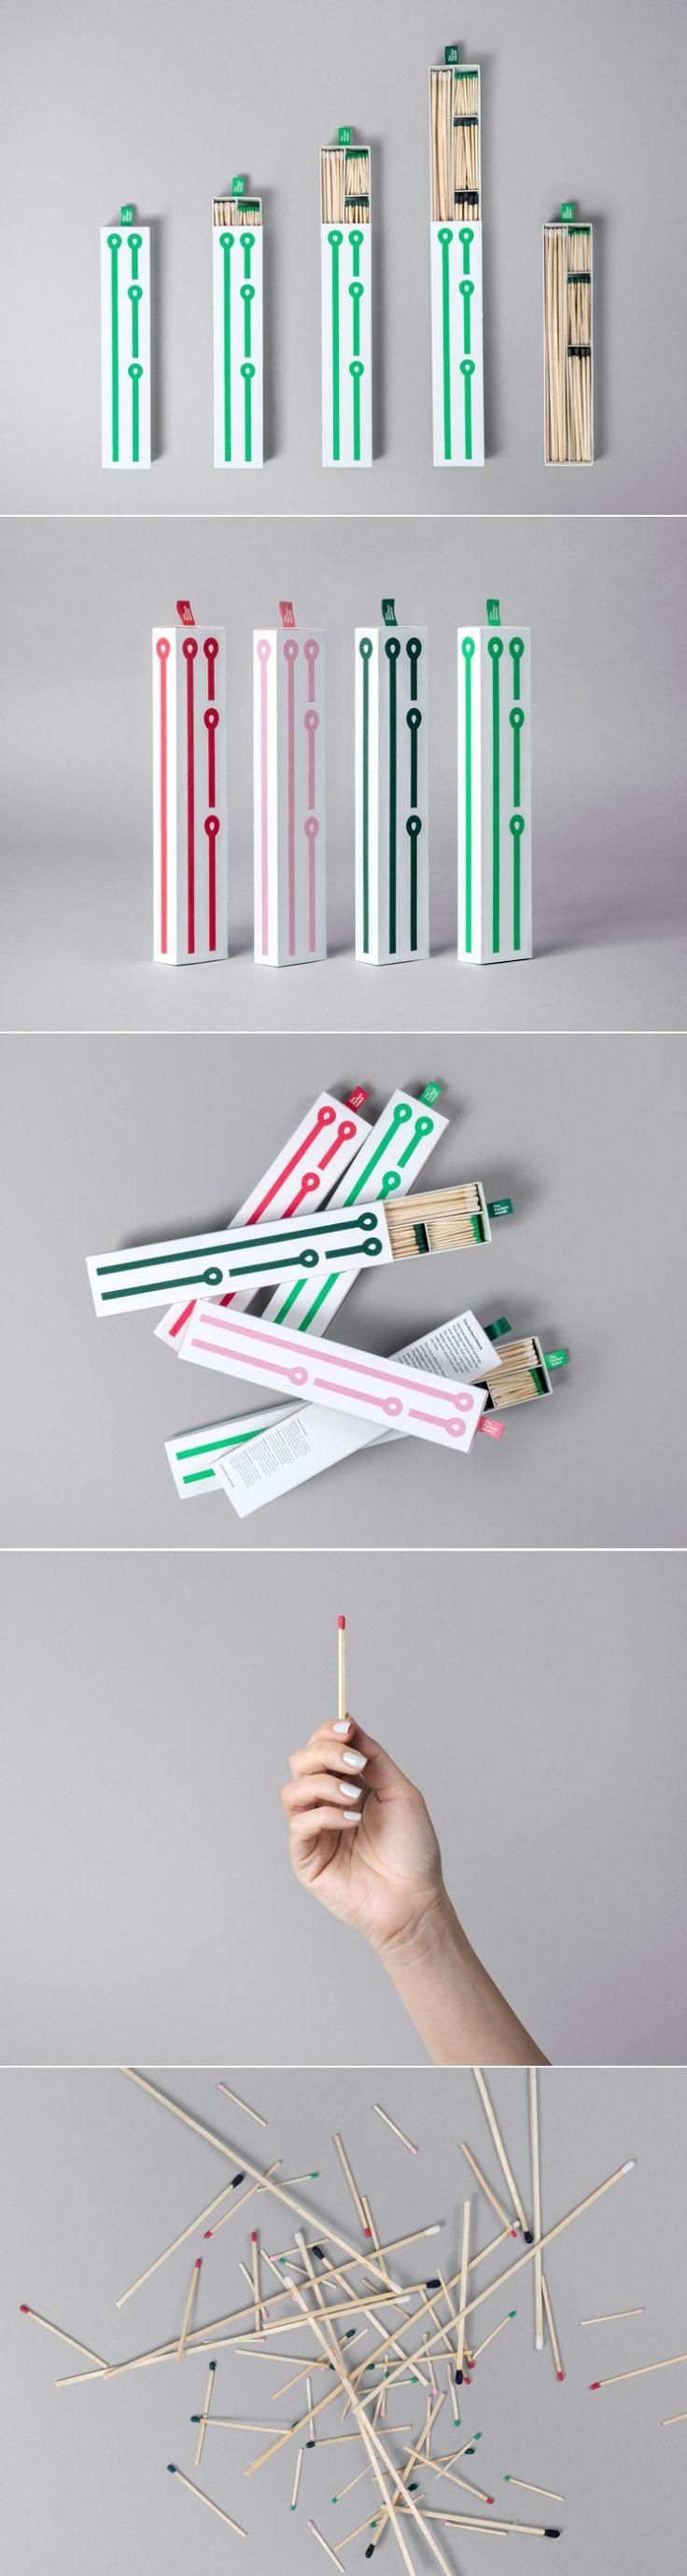 Four Ways to Light the Perfect Match — The Dieline - Branding & Packaging Design